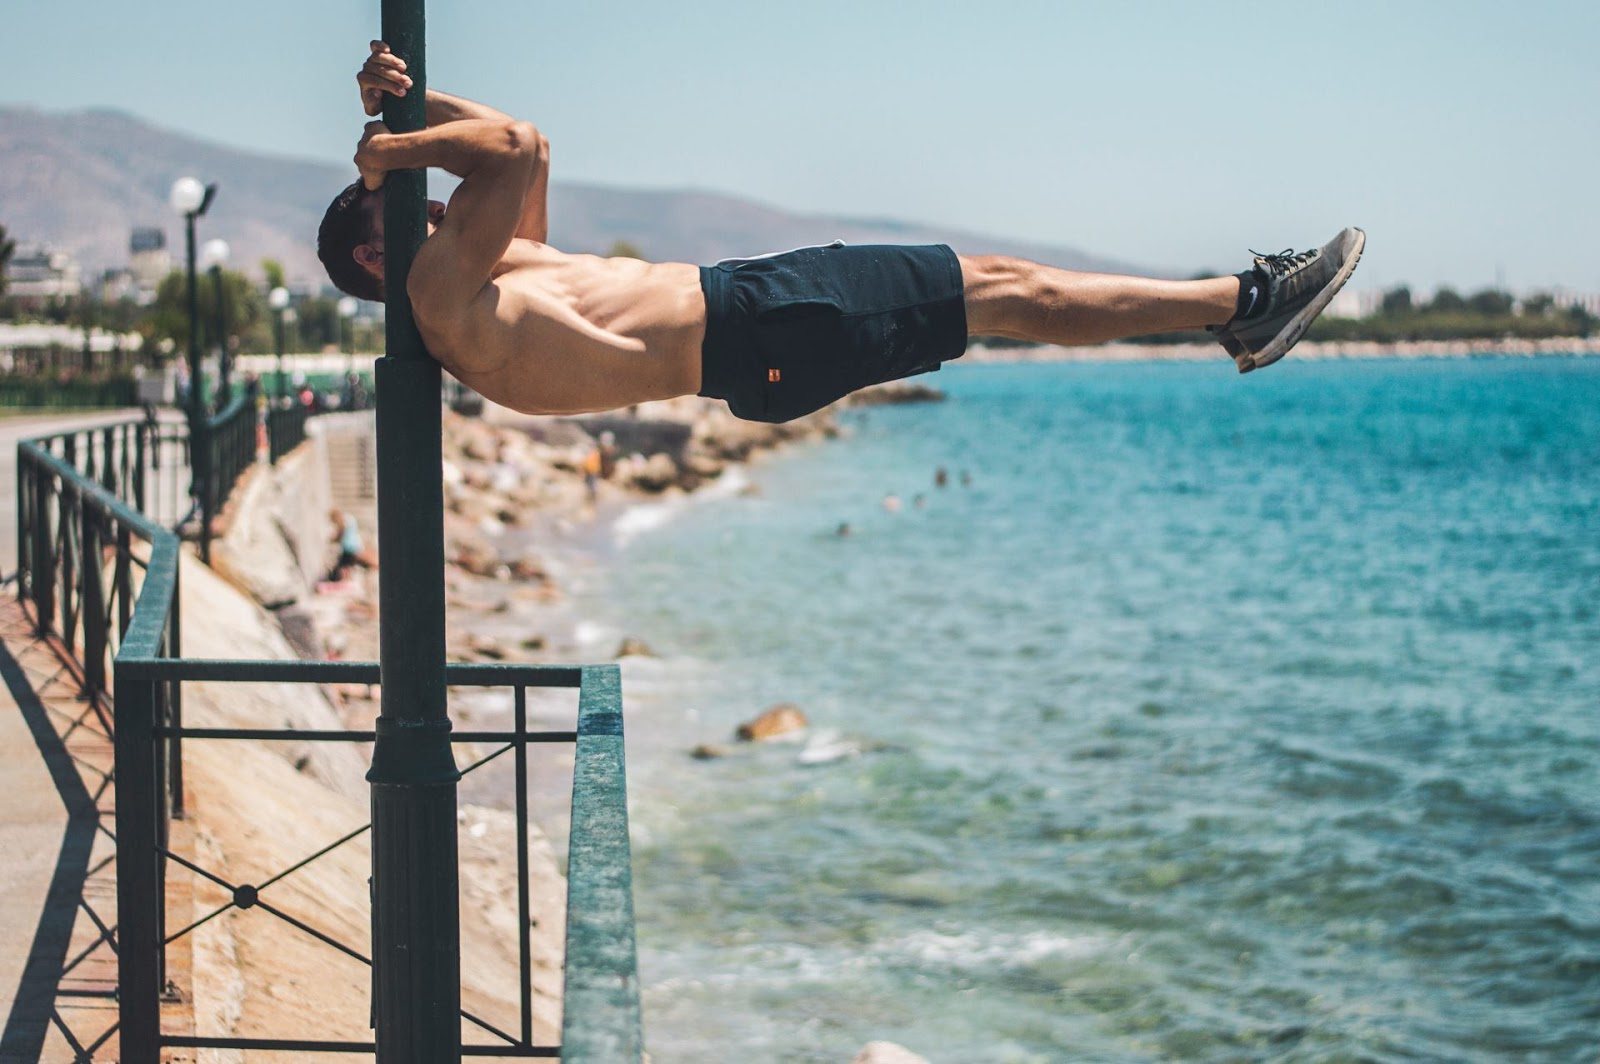 calisthenics/street workout